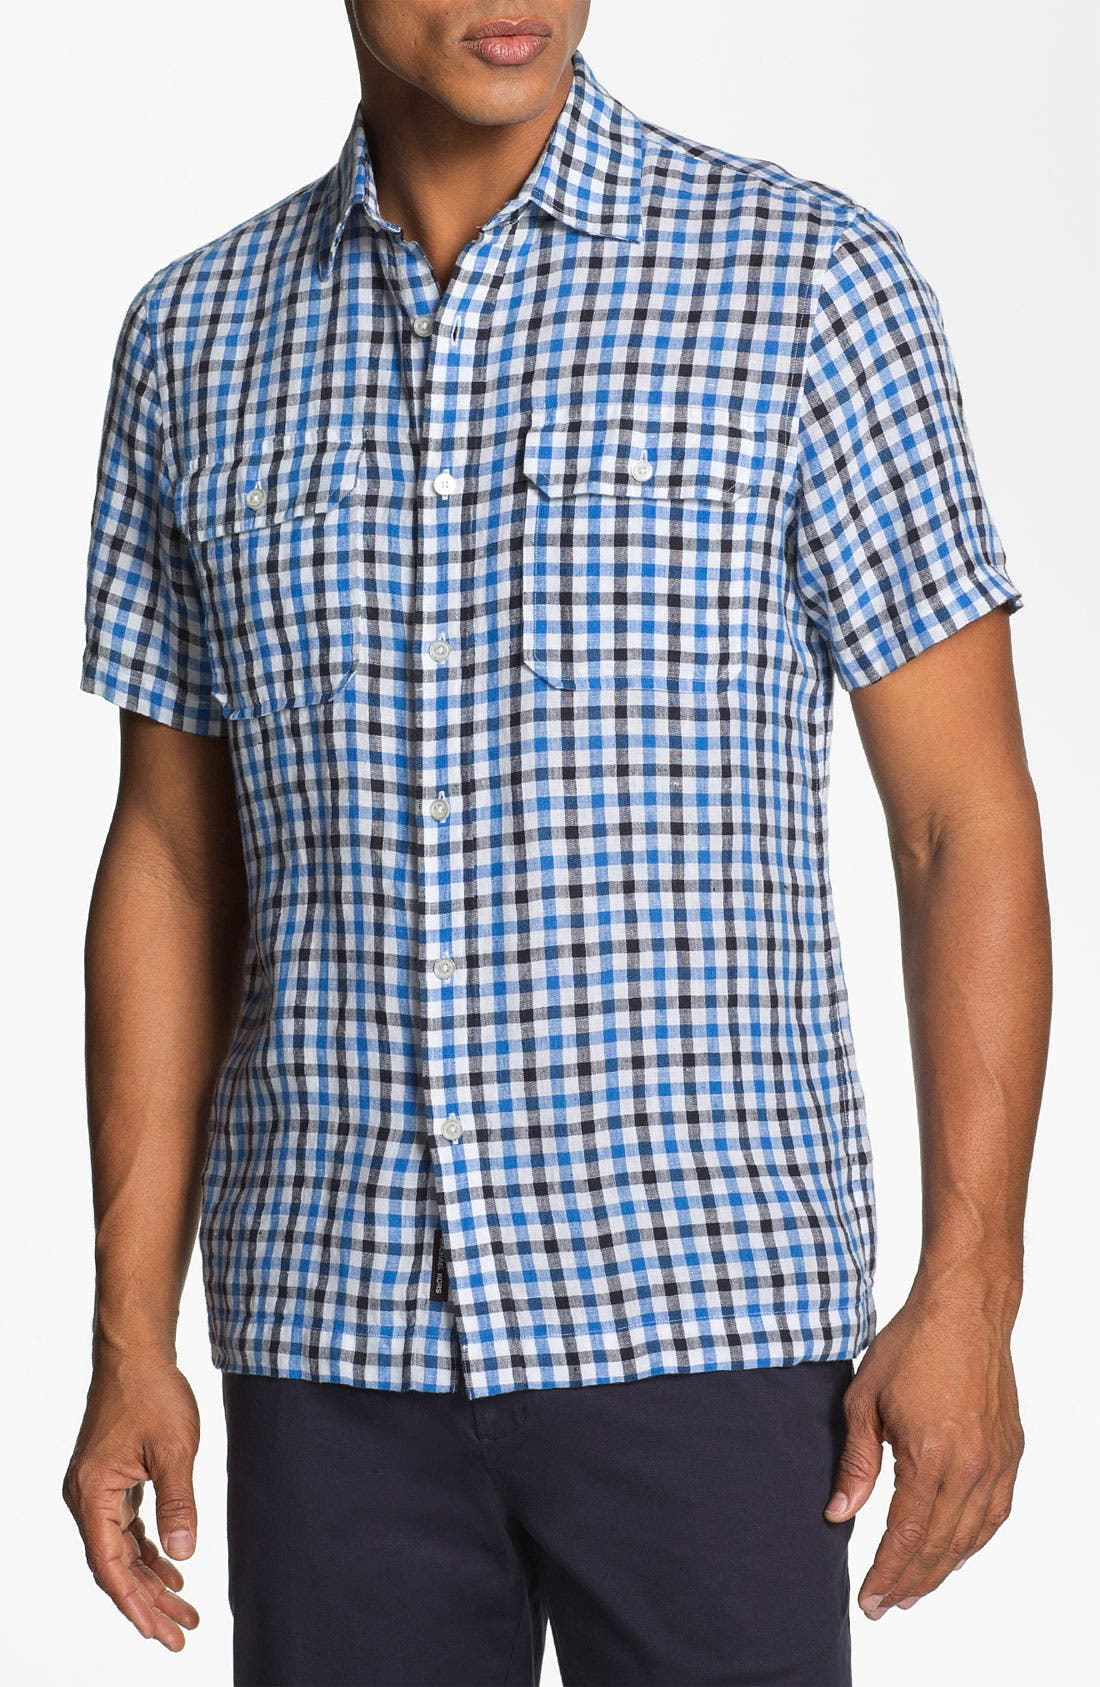 Main Image - Michael Kors 'Percy Check' Tailored Fit Sport Shirt